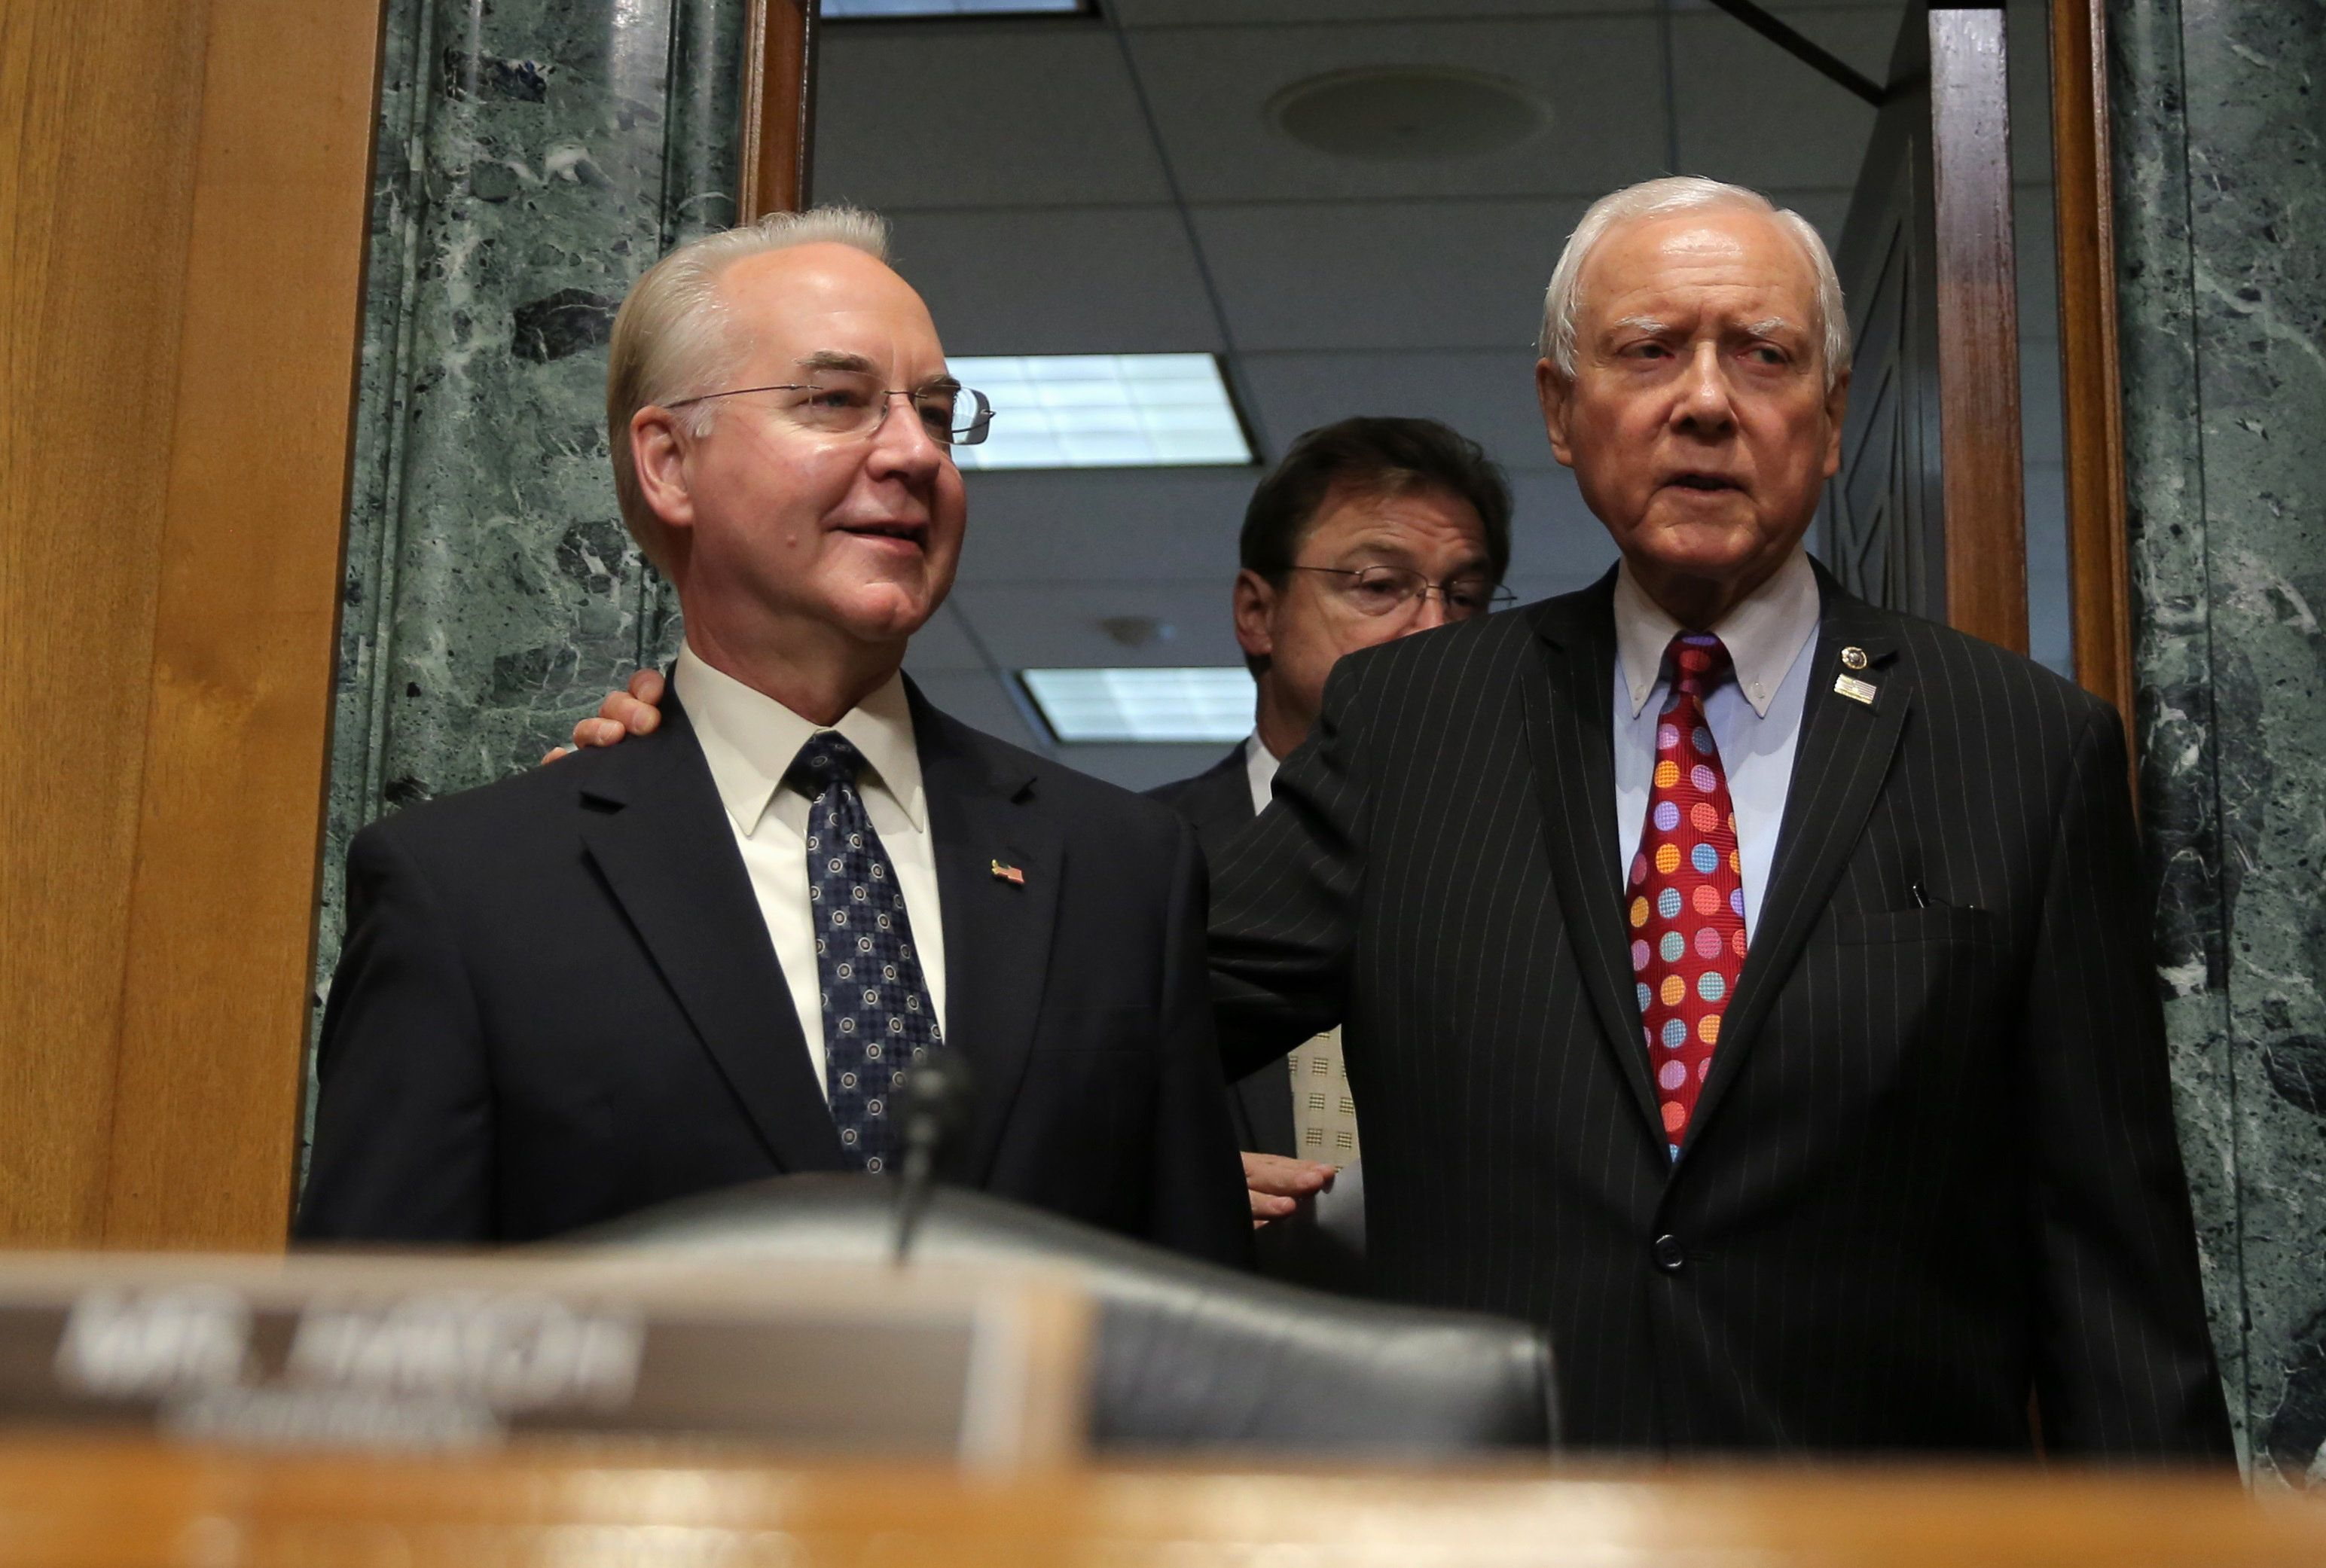 Rep. Tom Price (R-Ga.), left, is welcomed by Senate Finance Committee Chairman Orrin Hatch (R-Utah) prior to testifying befor